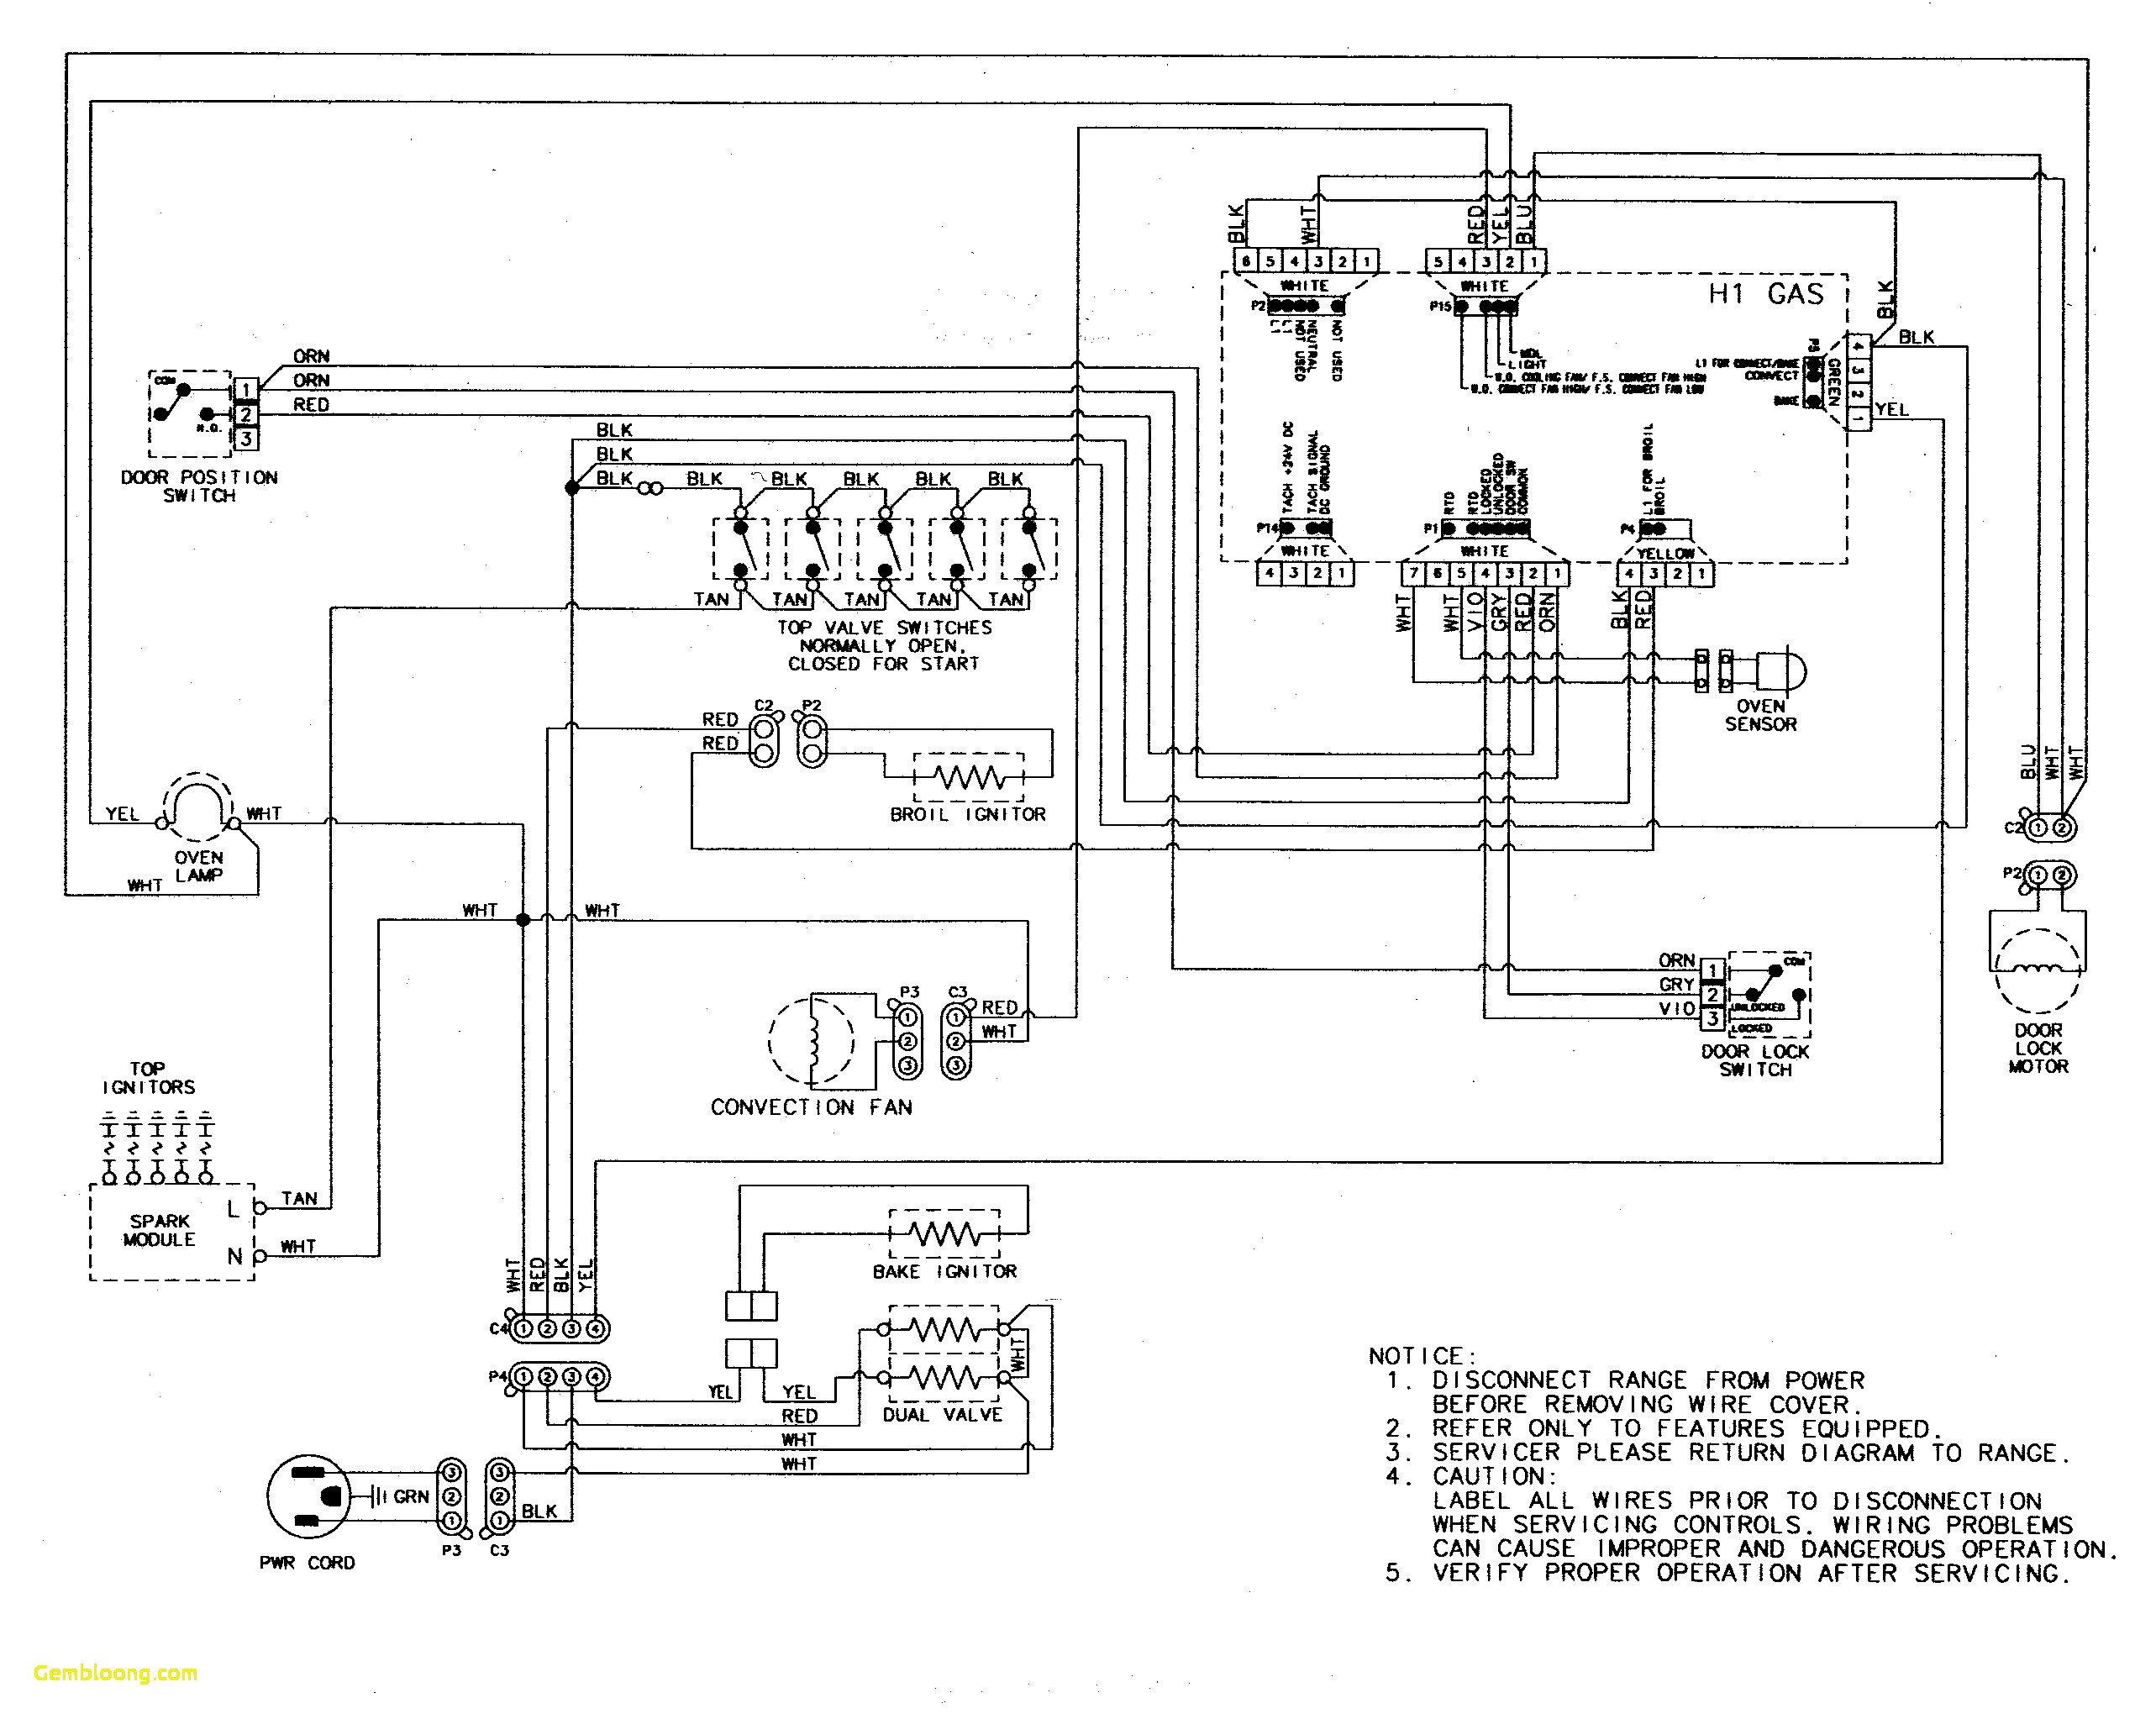 Gas Fireplace Thermostat Wiring Diagram Sample Pdf Nice Nest - Nest Wiring Diagram Pdf